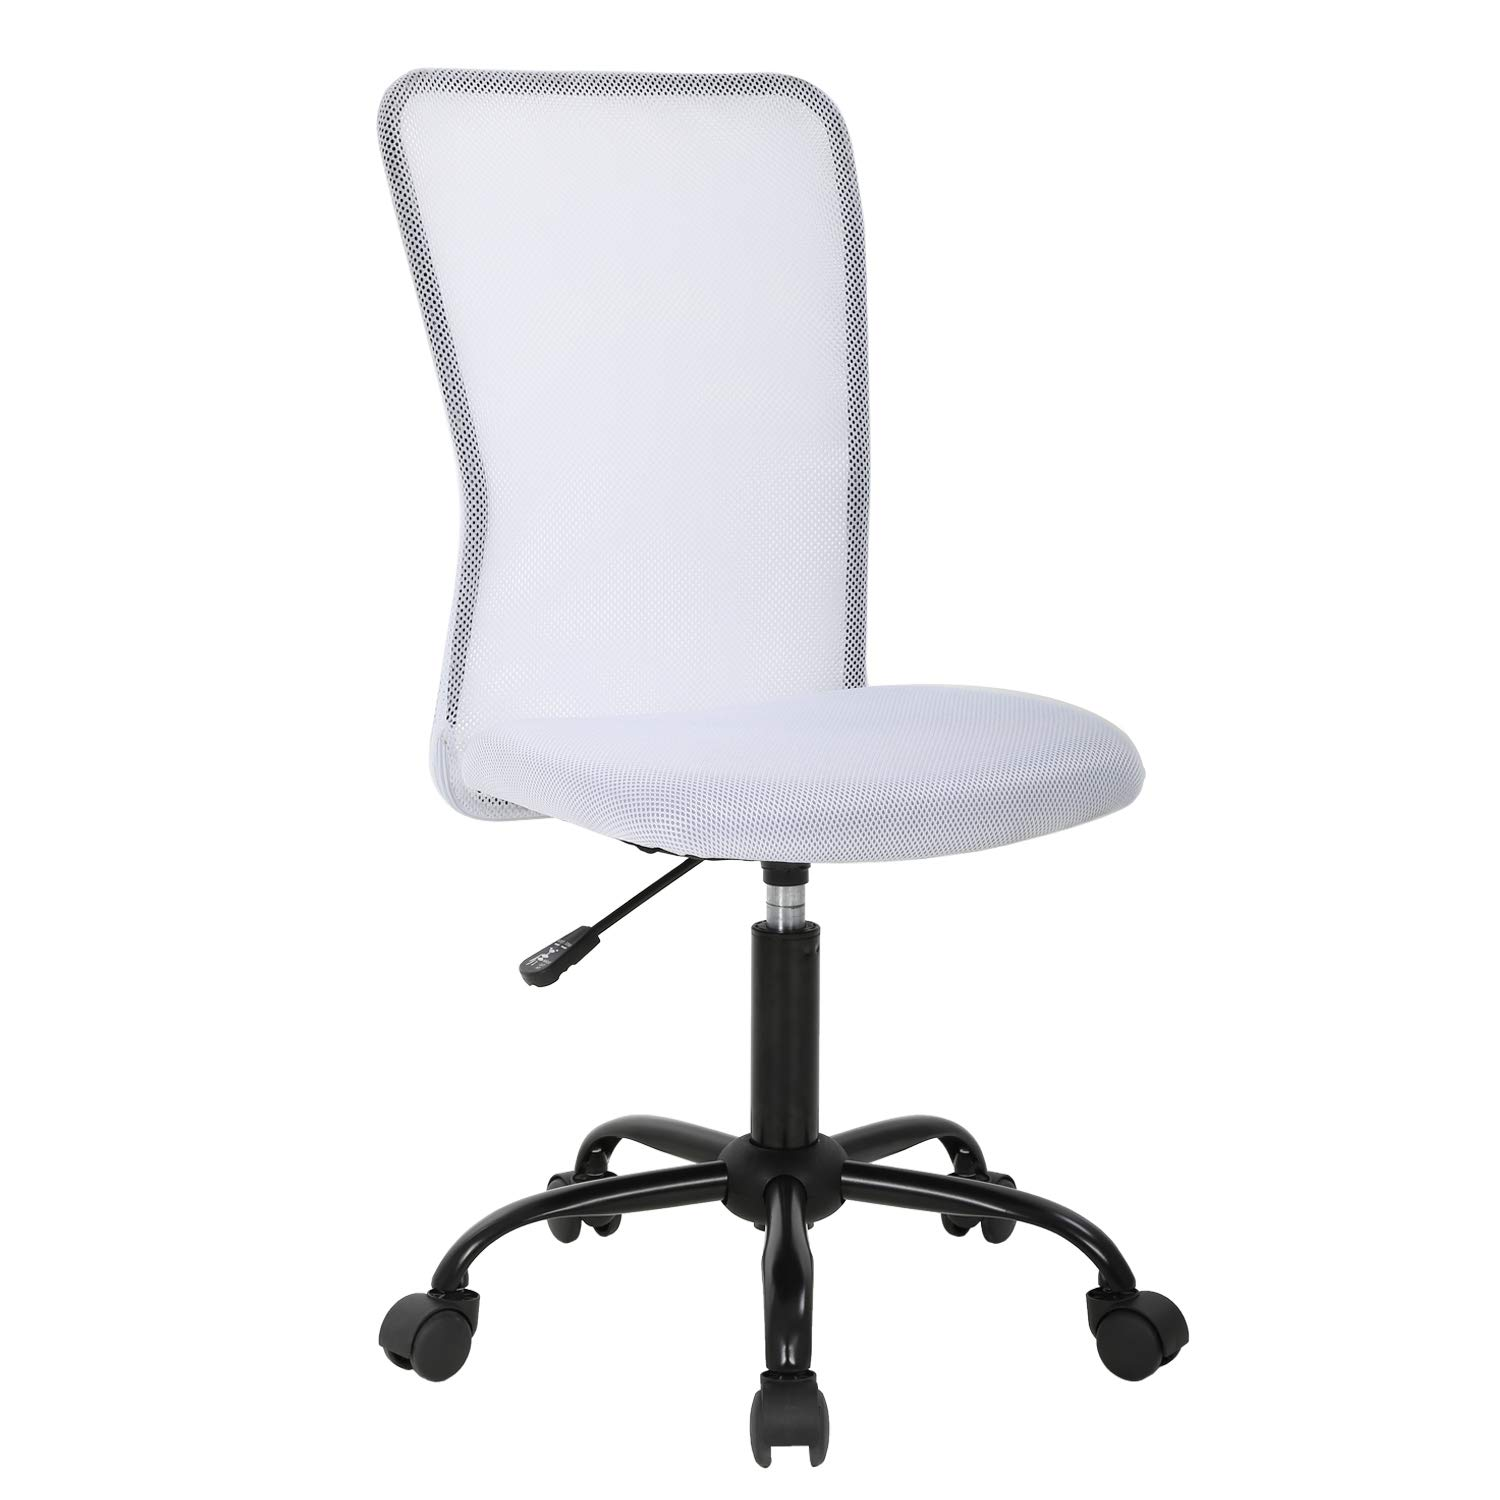 Ergonomic Office Chair Desk Chair Mesh Computer Chair Back Support Modern Executive Mid Back Rolling Swivel Chair for Women, Men (White) by BestOffice